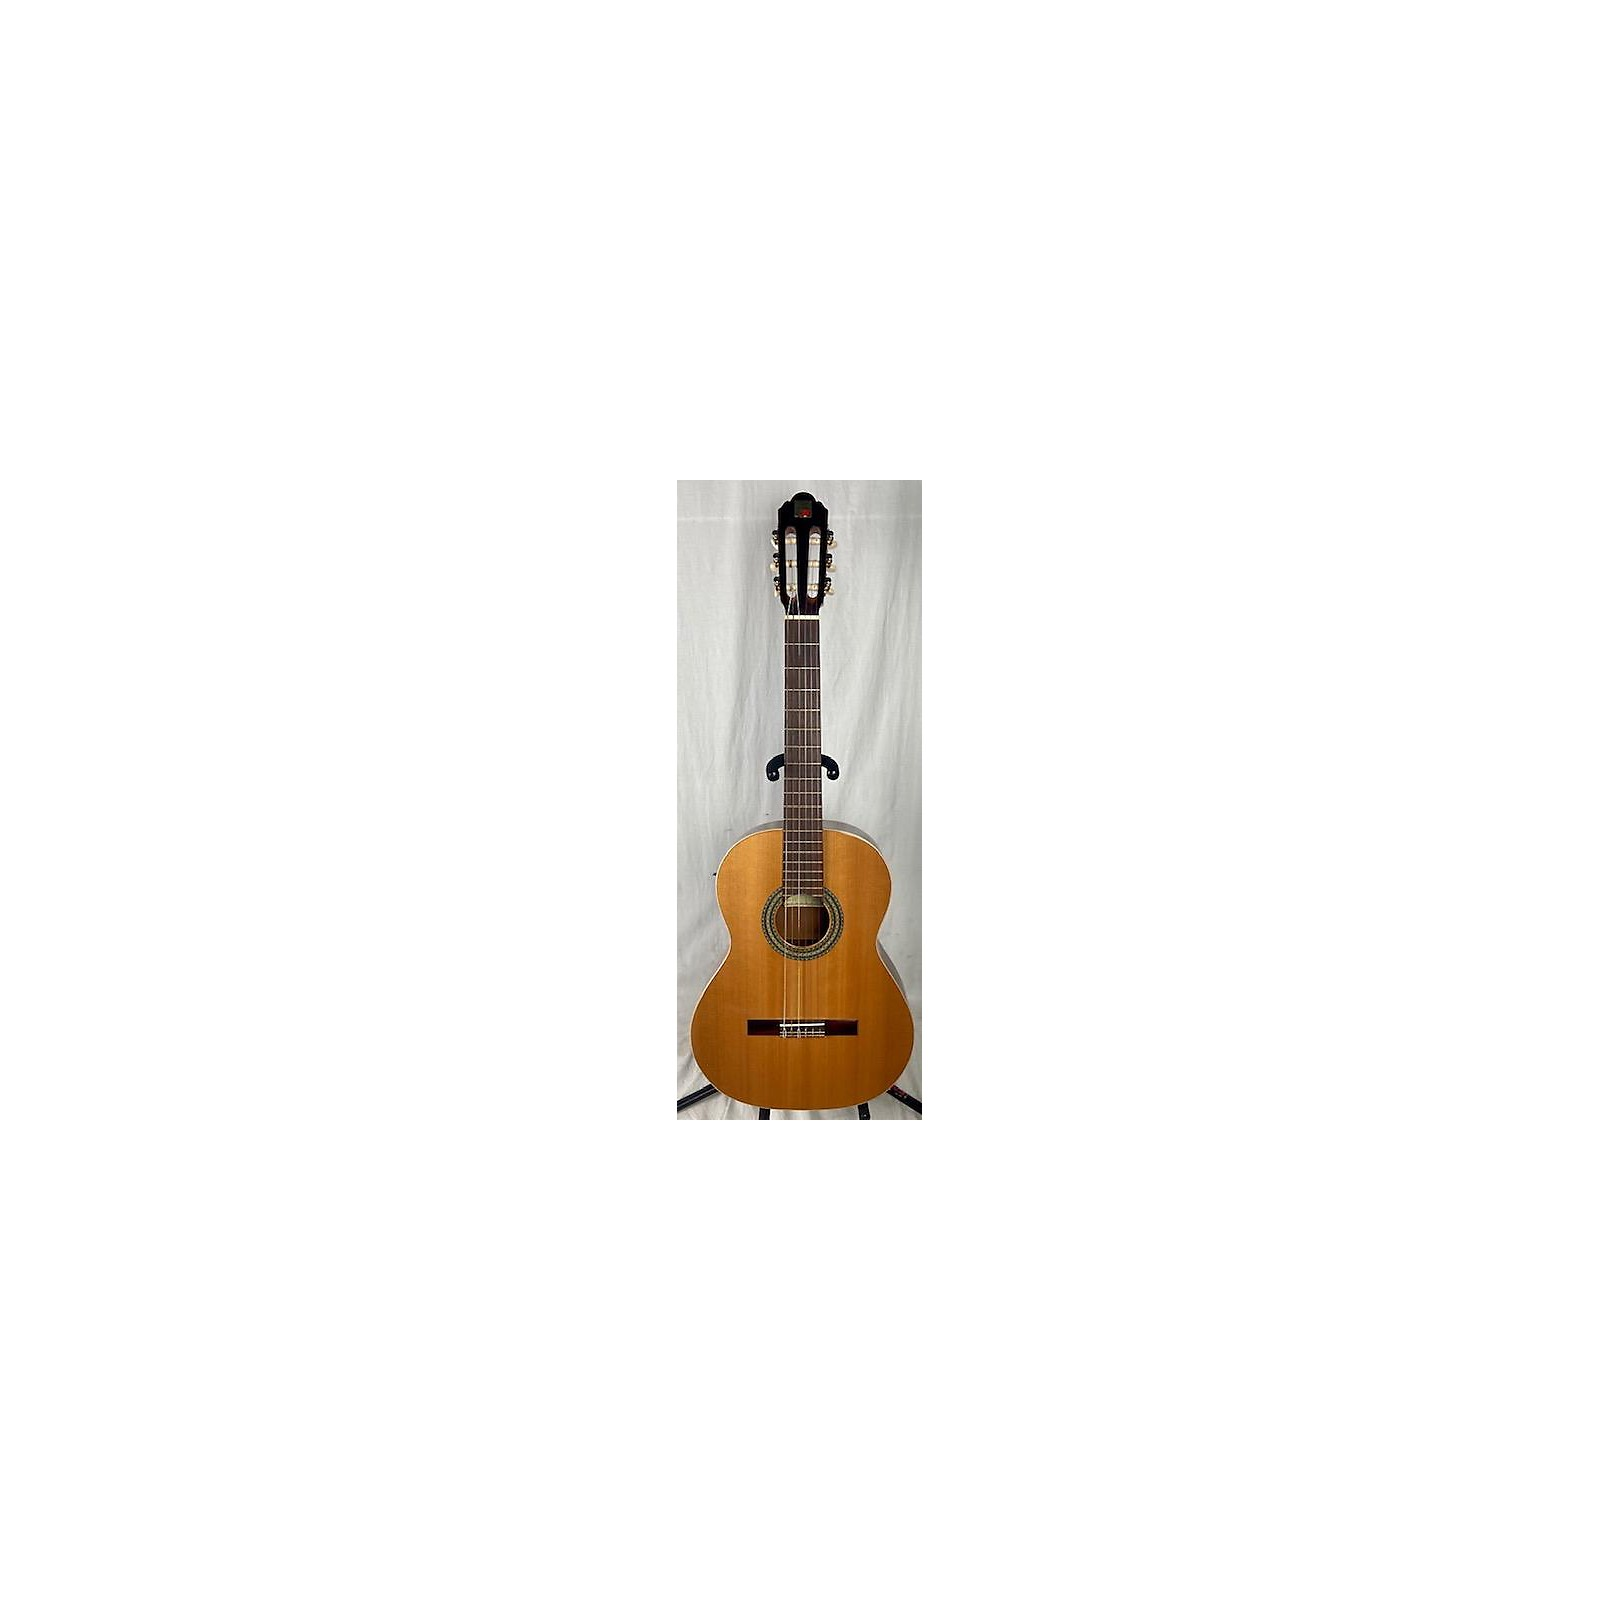 Alhambra Mod 2C Classical Acoustic Guitar